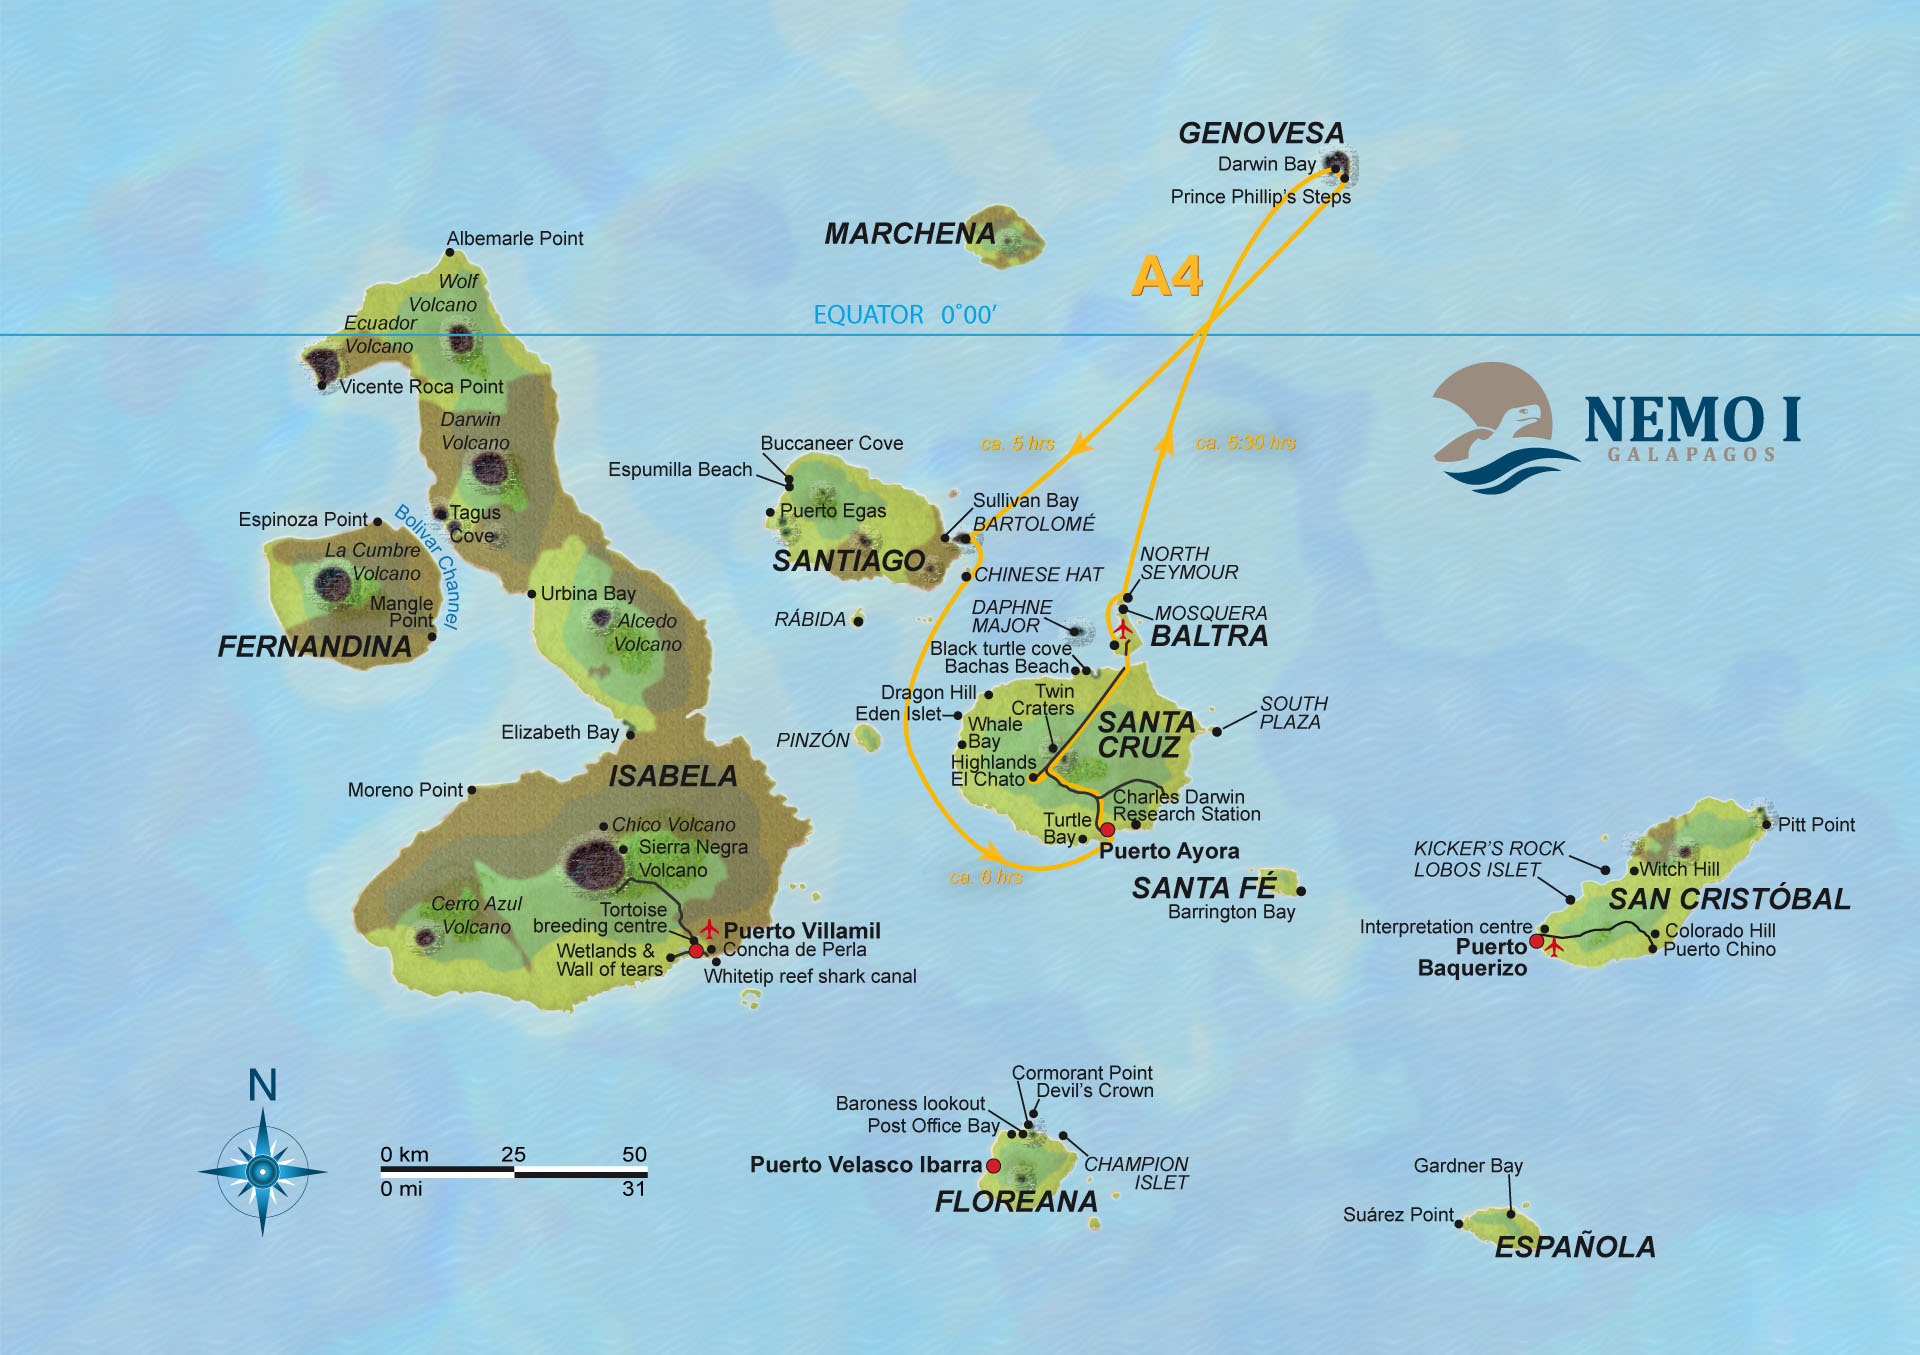 Map for Galapagos 4 Day Cruise Itinerary A (Nemo I)